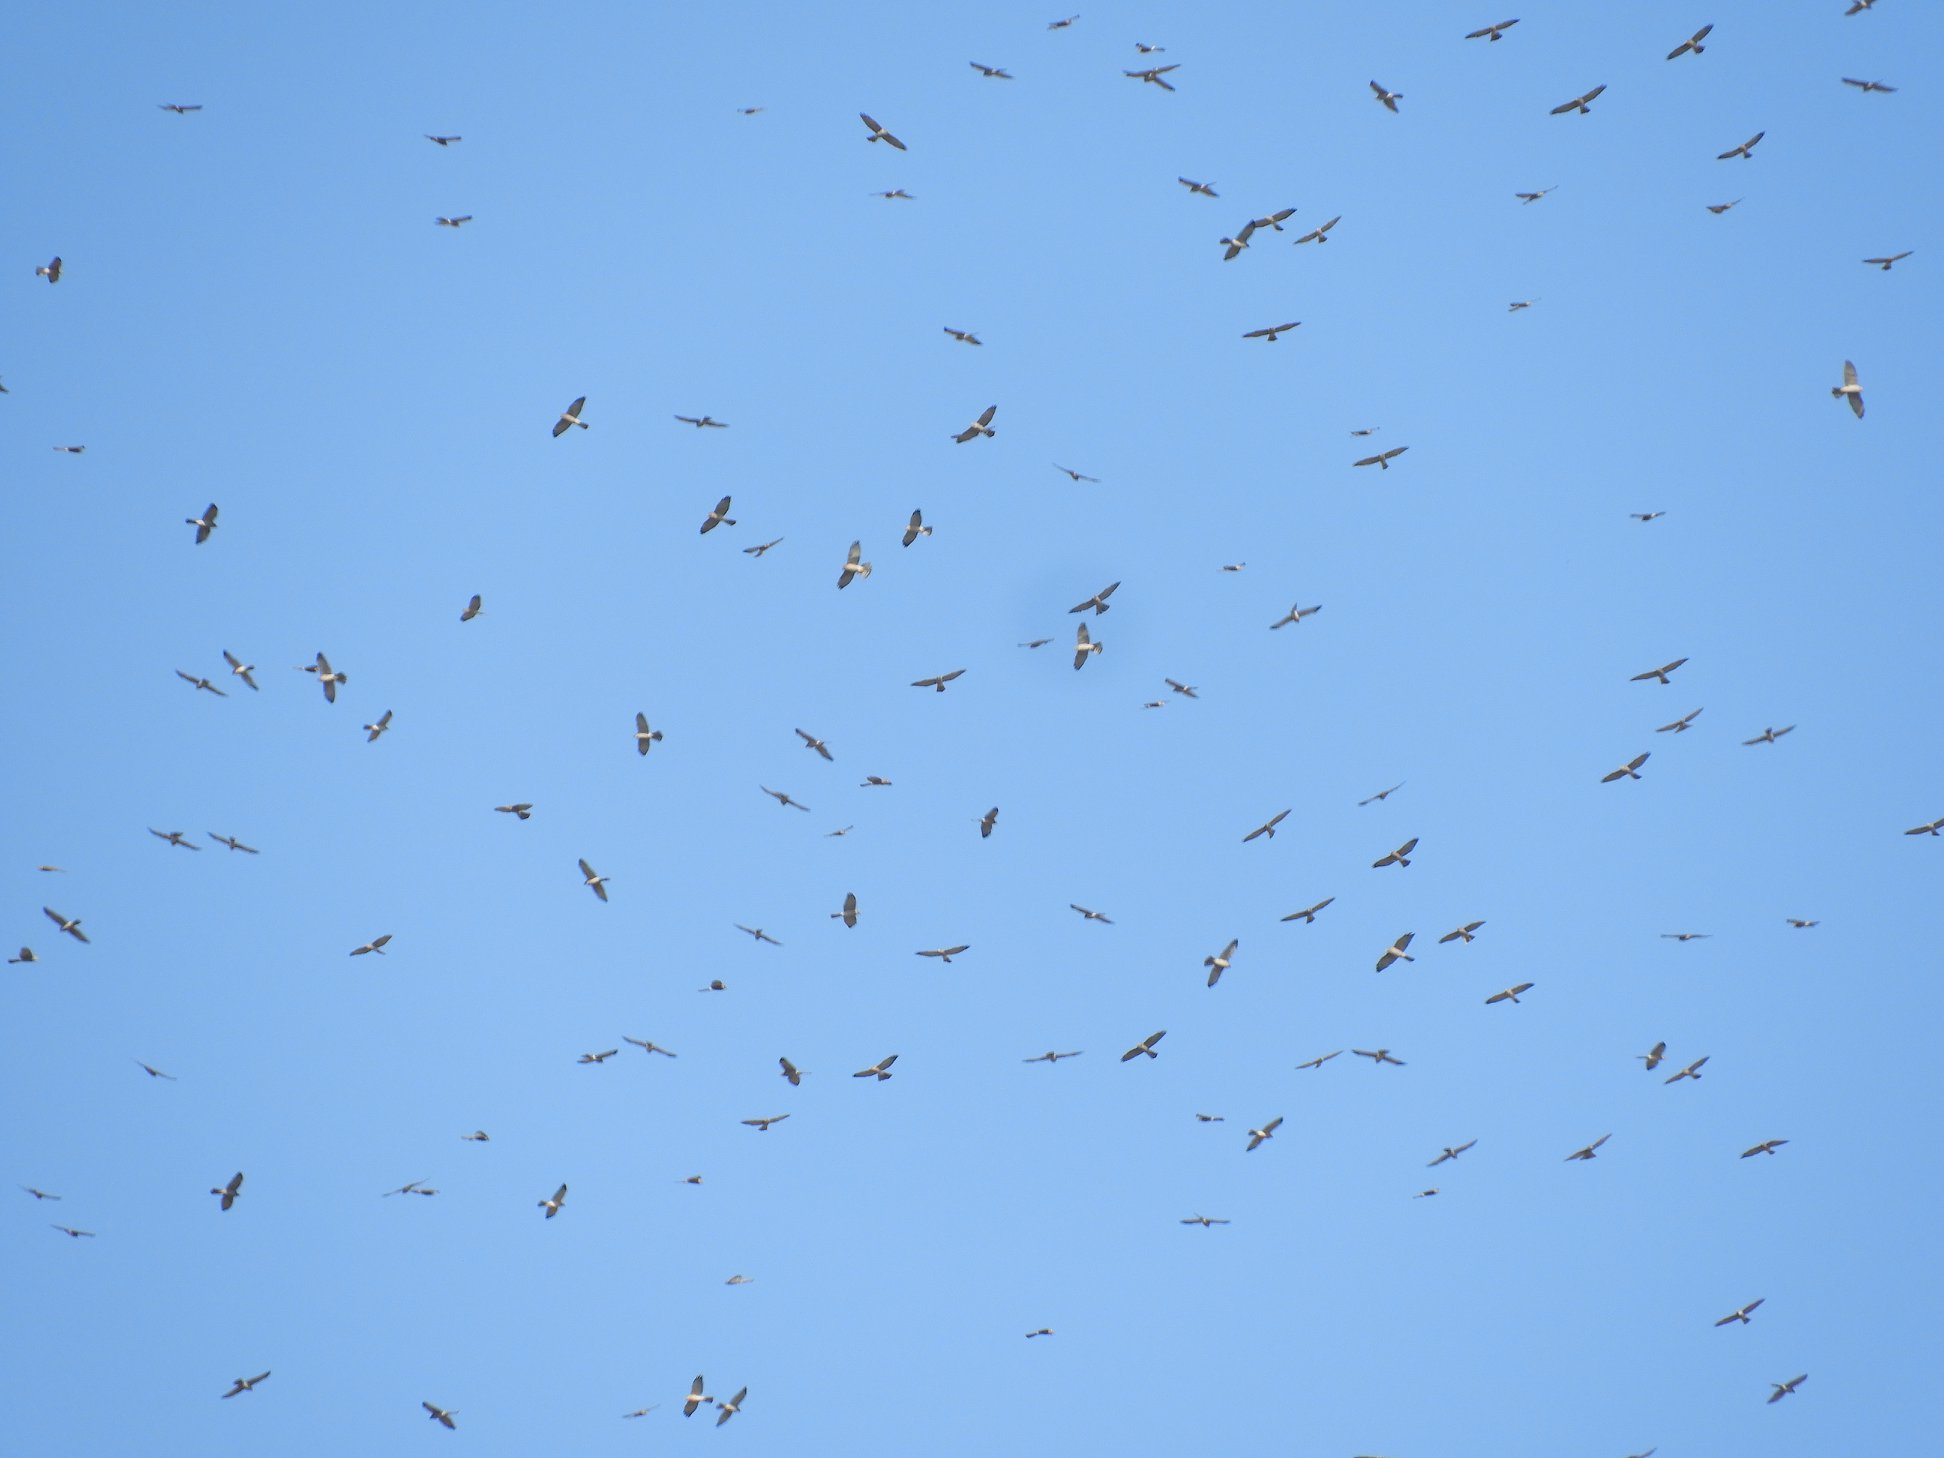 Over 800 Egyptian vultures counted in Turkey on their migration